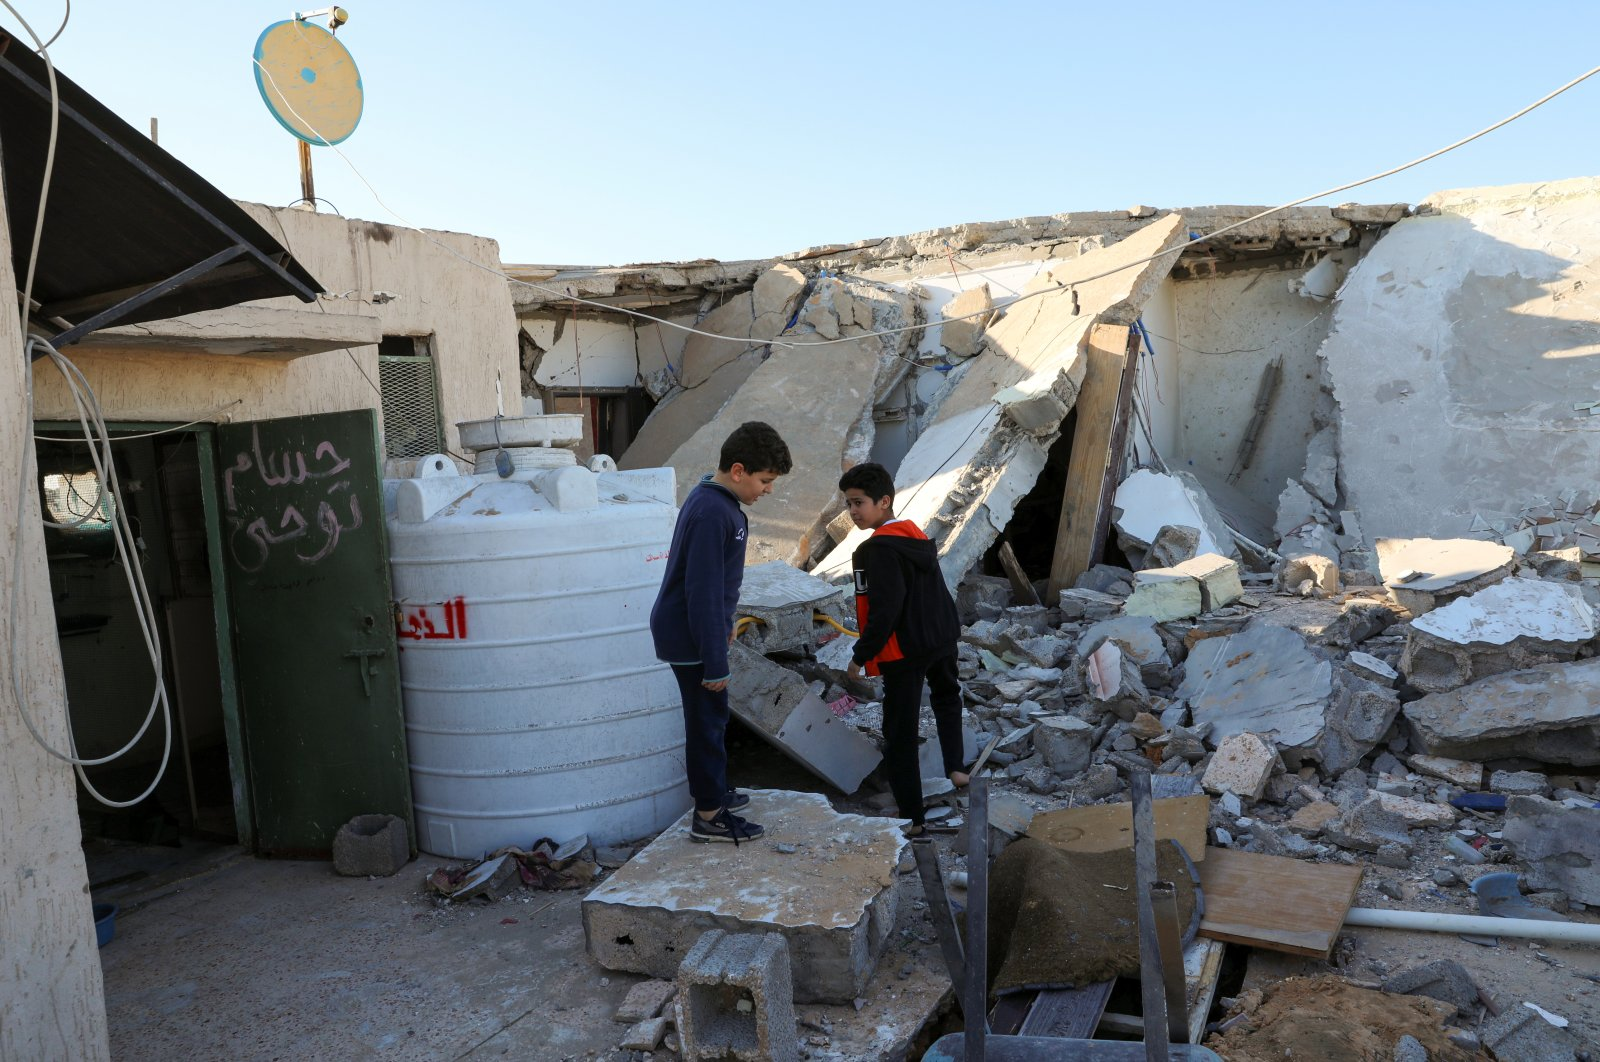 Boys stand near a damaged house after Haftar forces' shelling on a residential area, in Abu Slim district south of Tripoli, Libya February 28, 2020.  (REUTERS Photo)